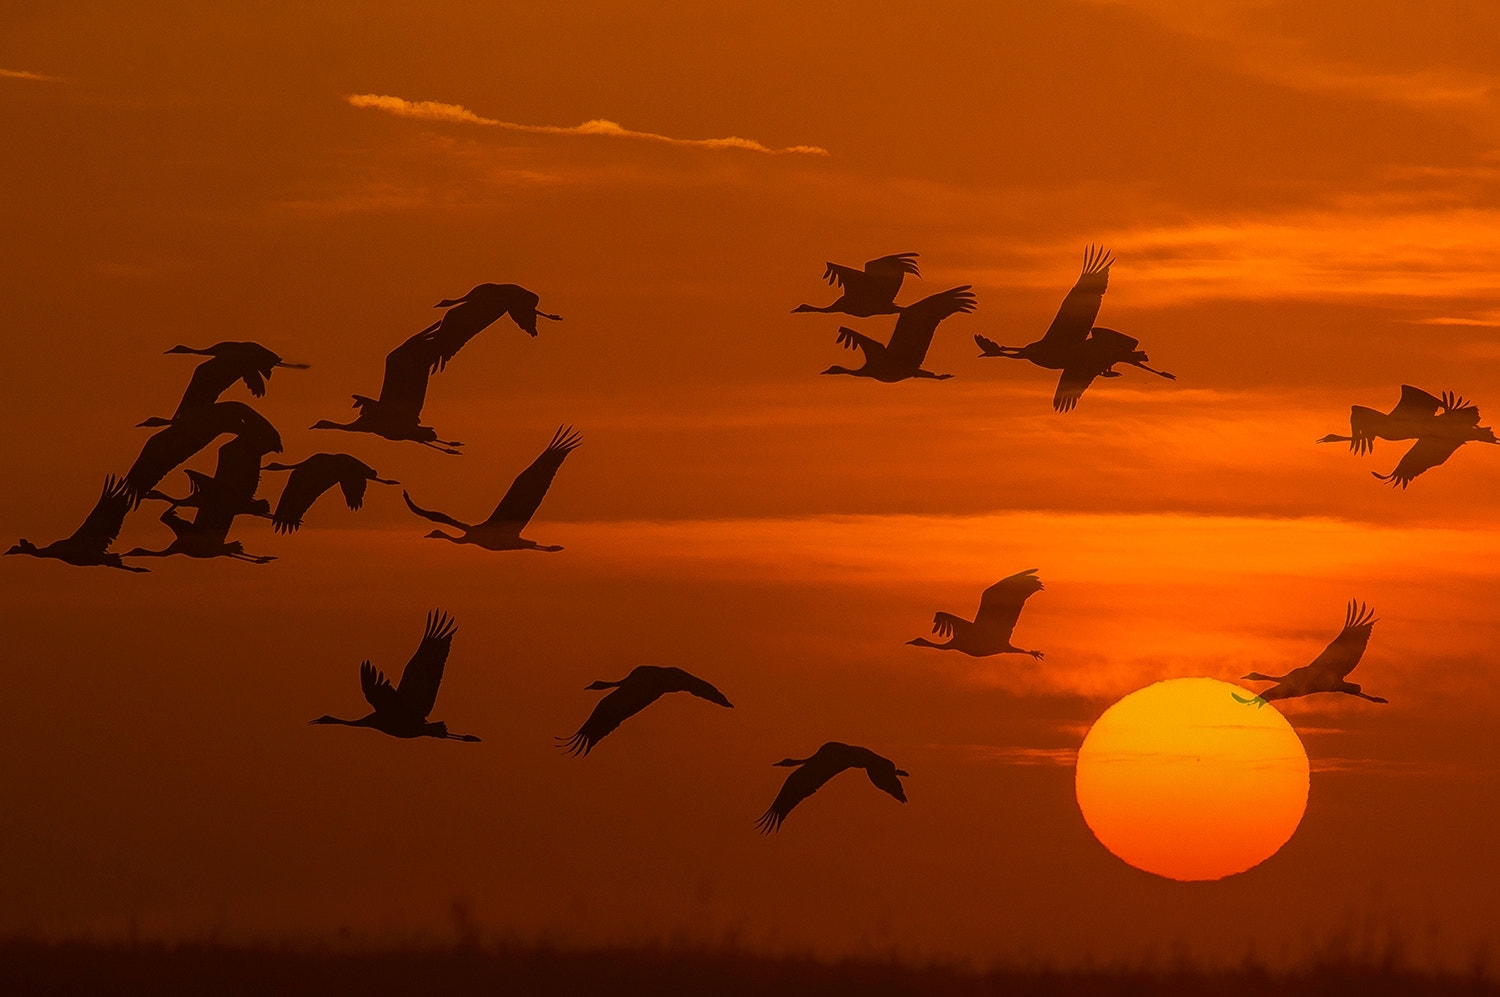 Photograph flying past shadows by Andy 58 on 500px